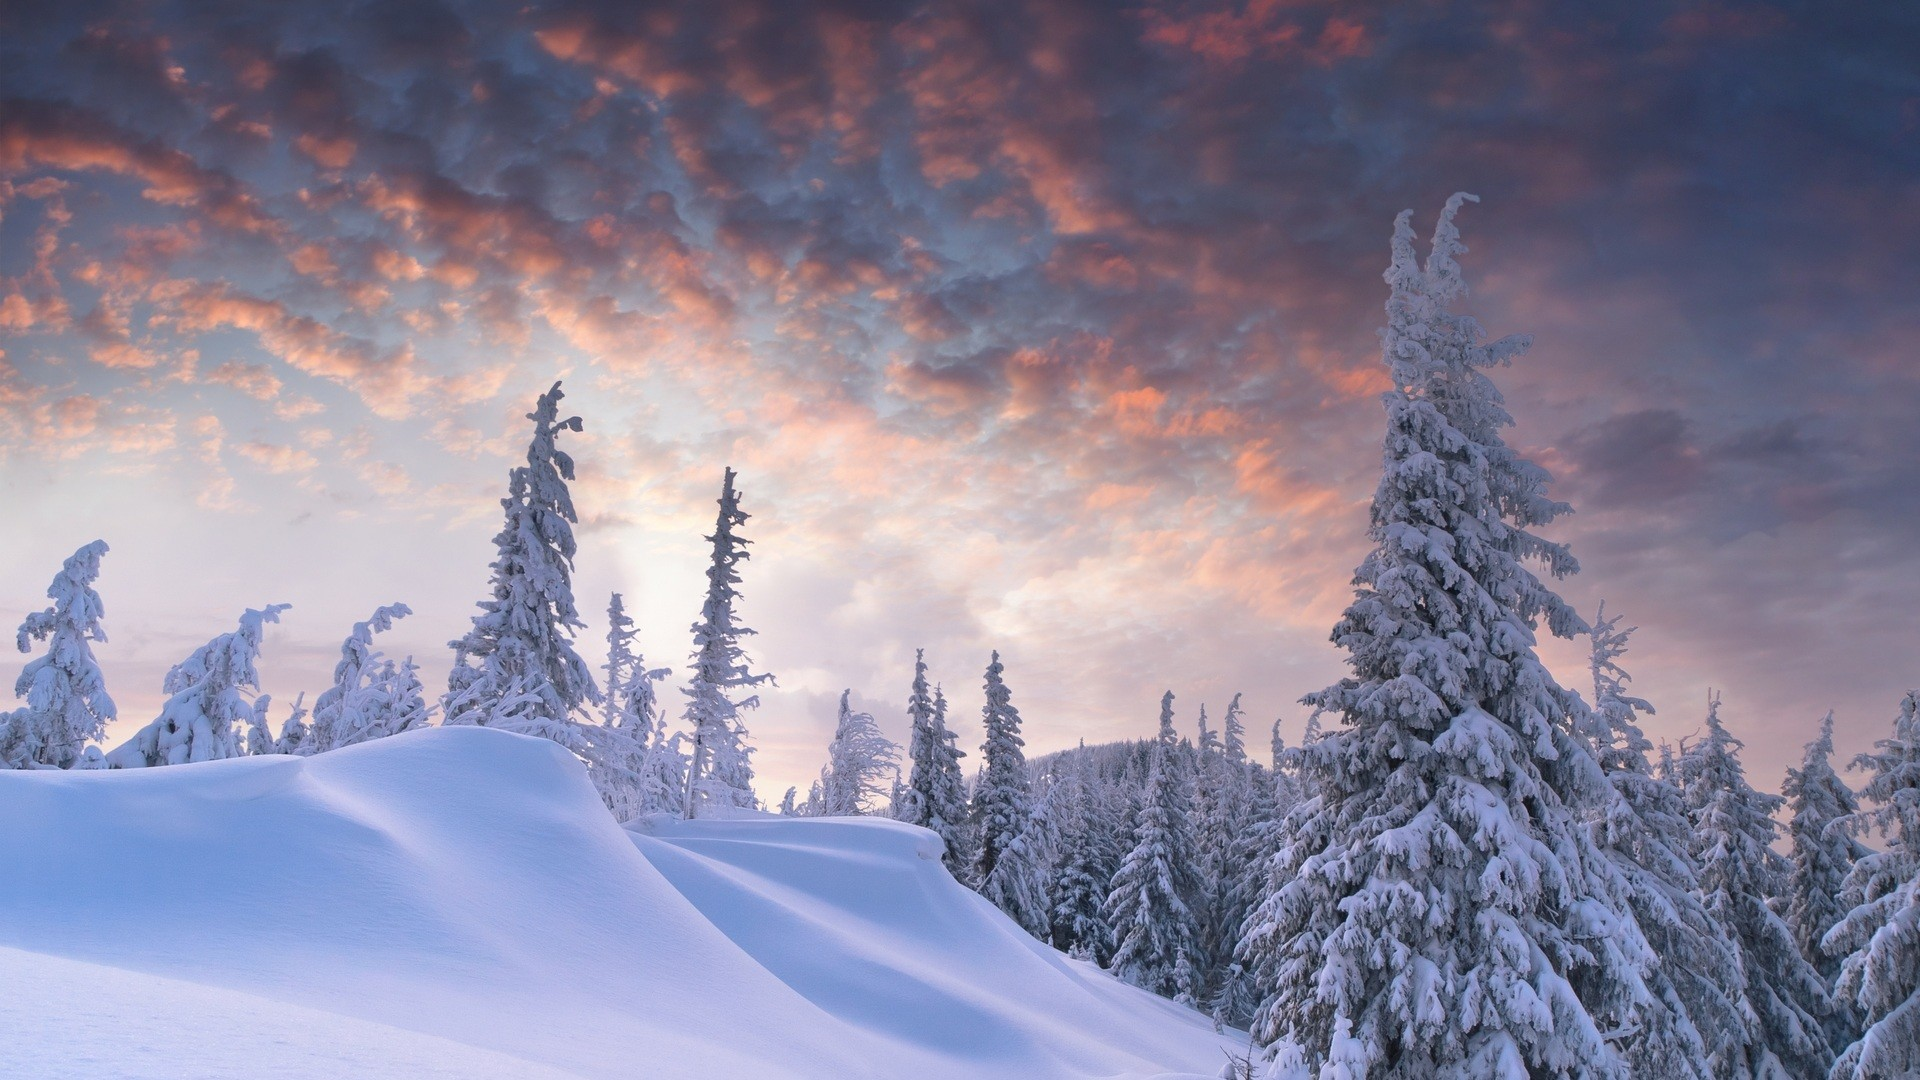 christmas winter scenes wallpaper ·①